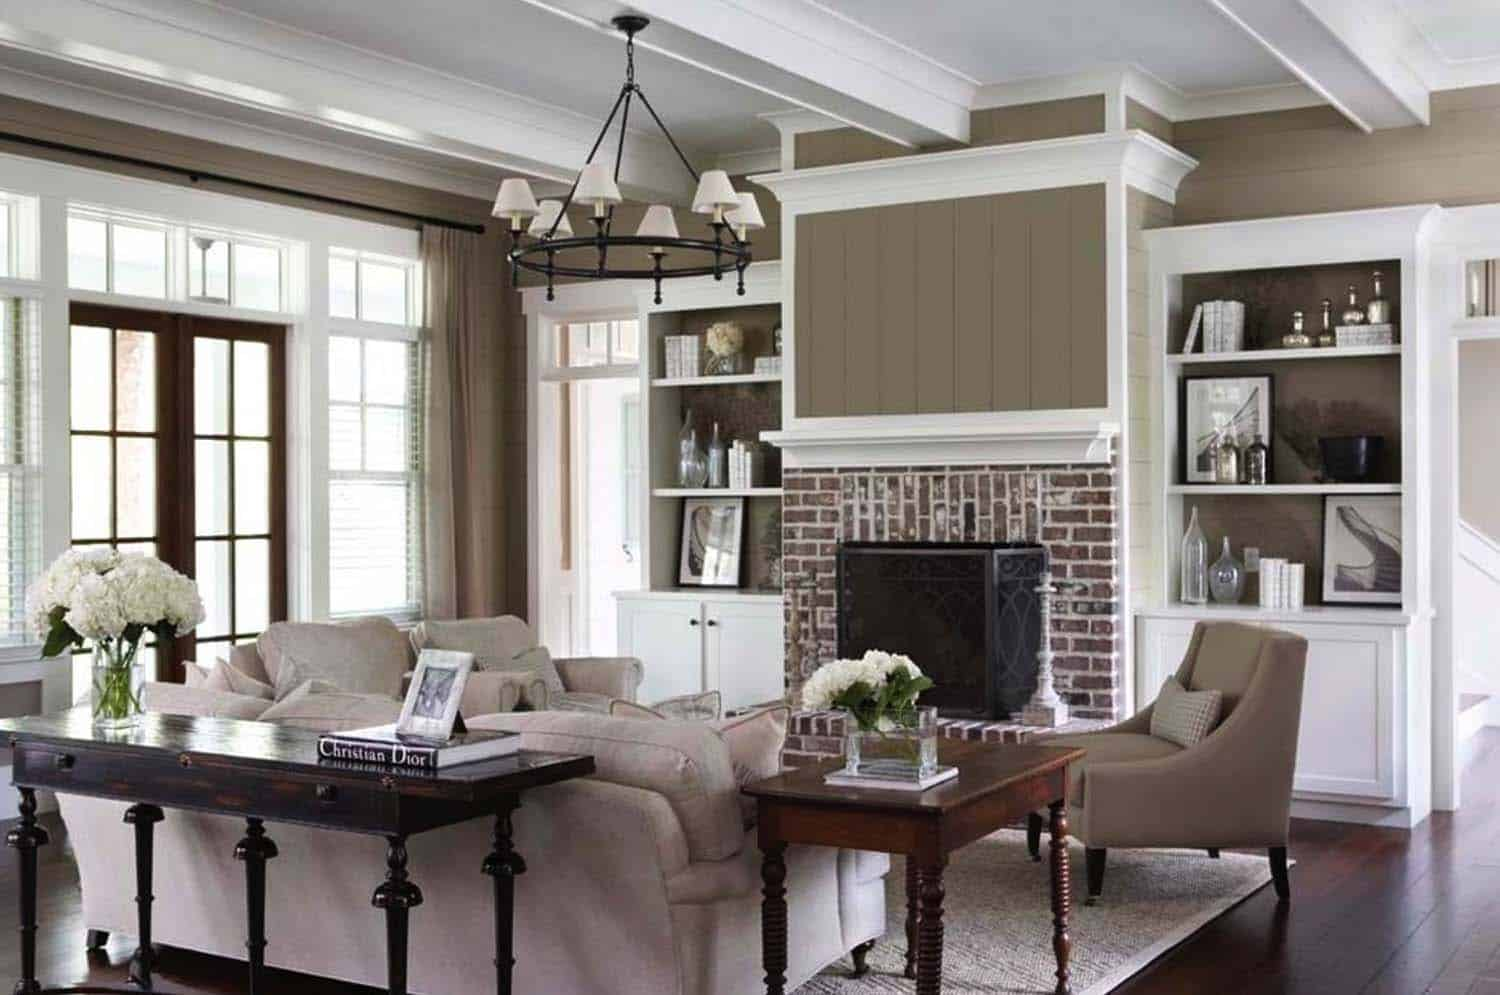 Lowcountry Style Home-Linda McDougald Design-10-1 Kindesign